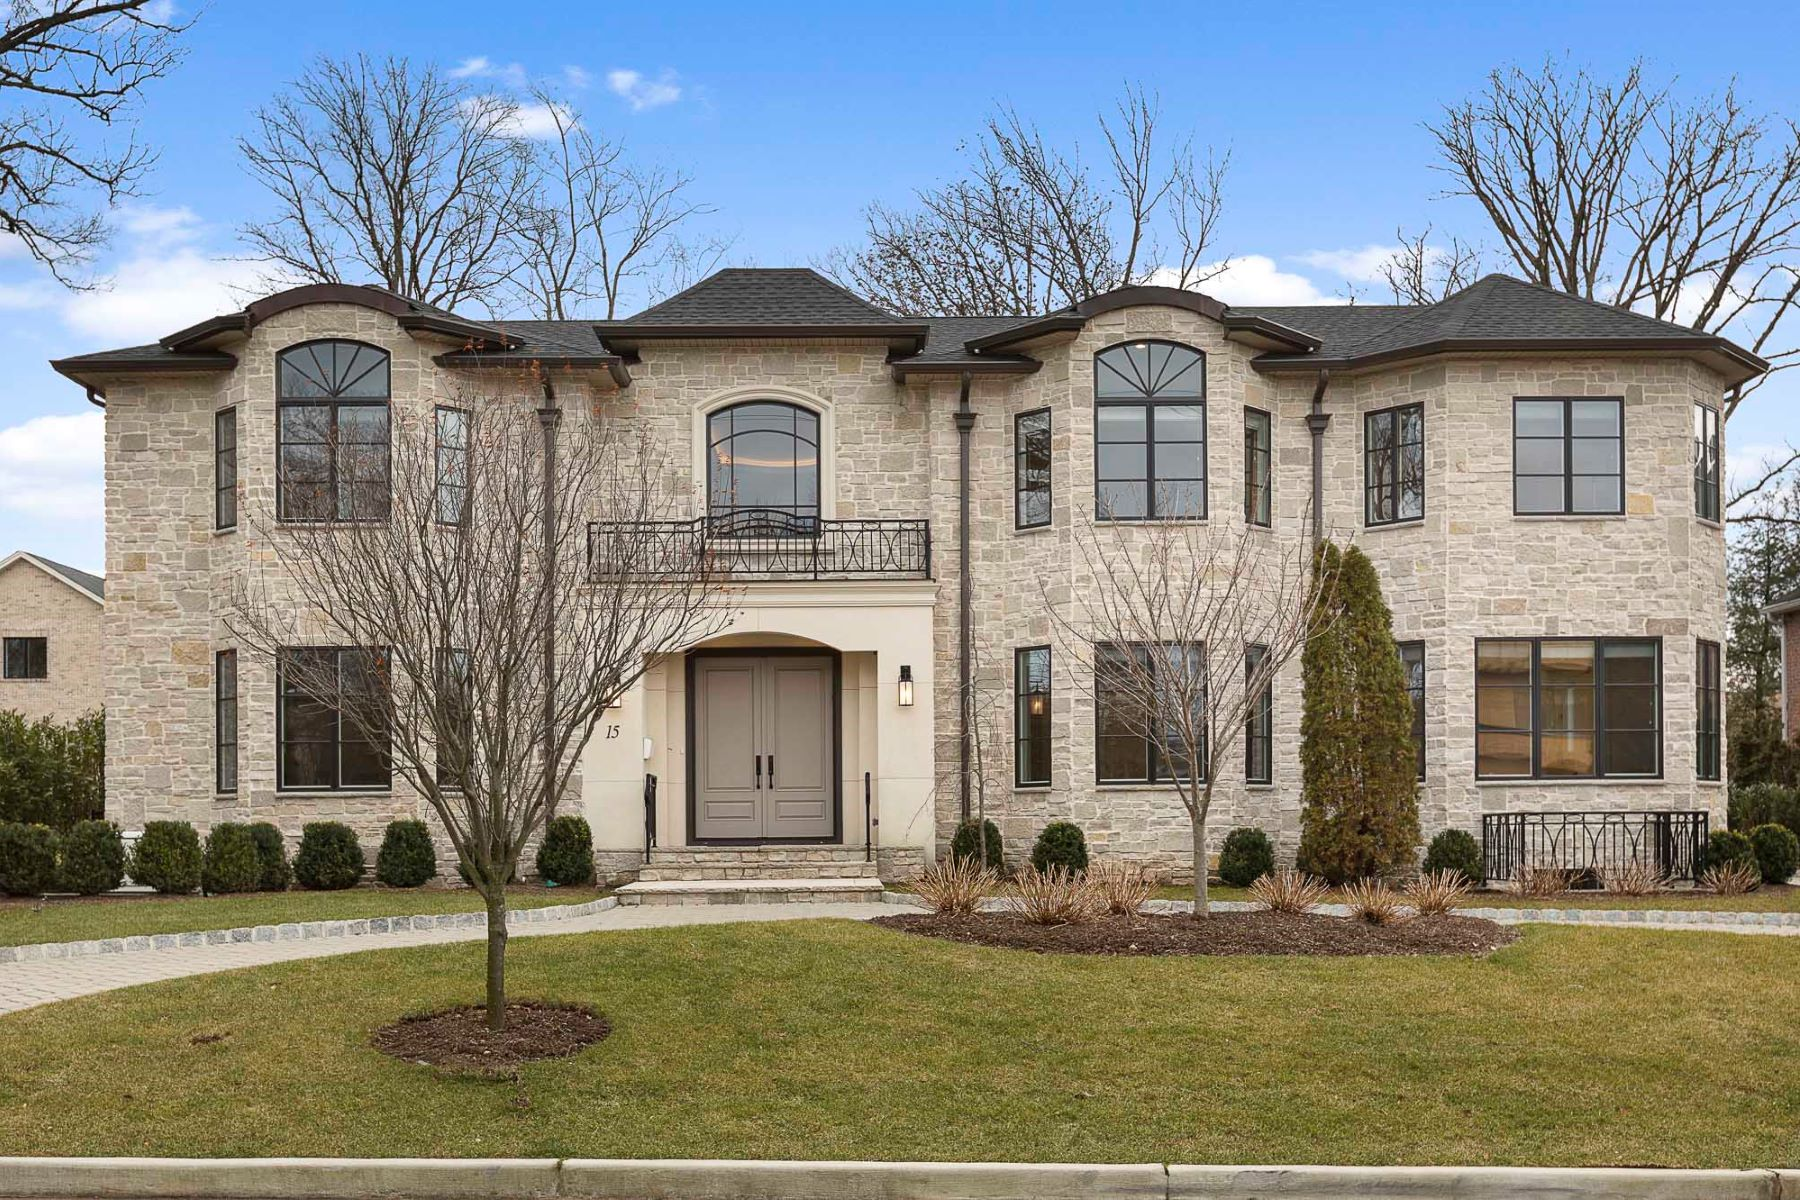 Single Family Homes for Sale at Magnificent Craftsmanship 15 Stephen Drive Englewood Cliffs, New Jersey 07632 United States